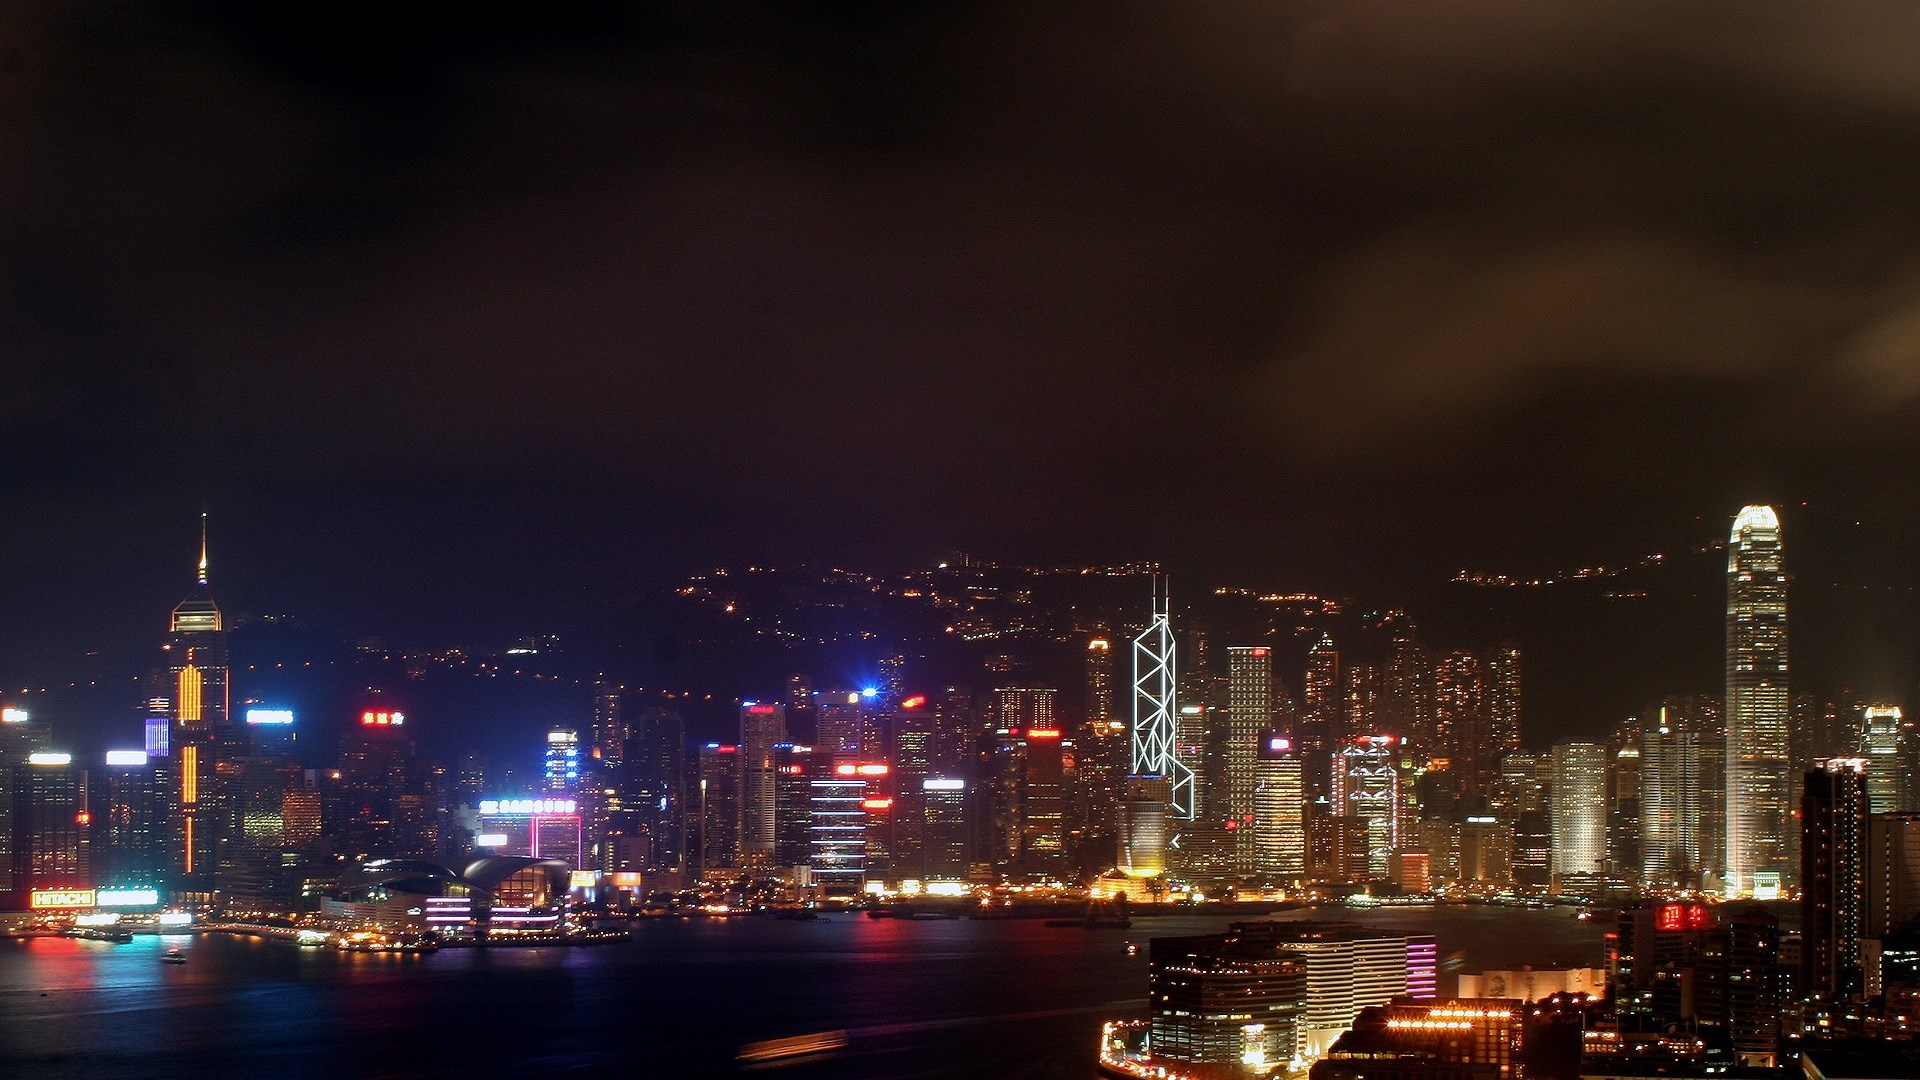 hong-kong-backgrounds-images-1920x1080-kB-wallpaper-wpc5805973